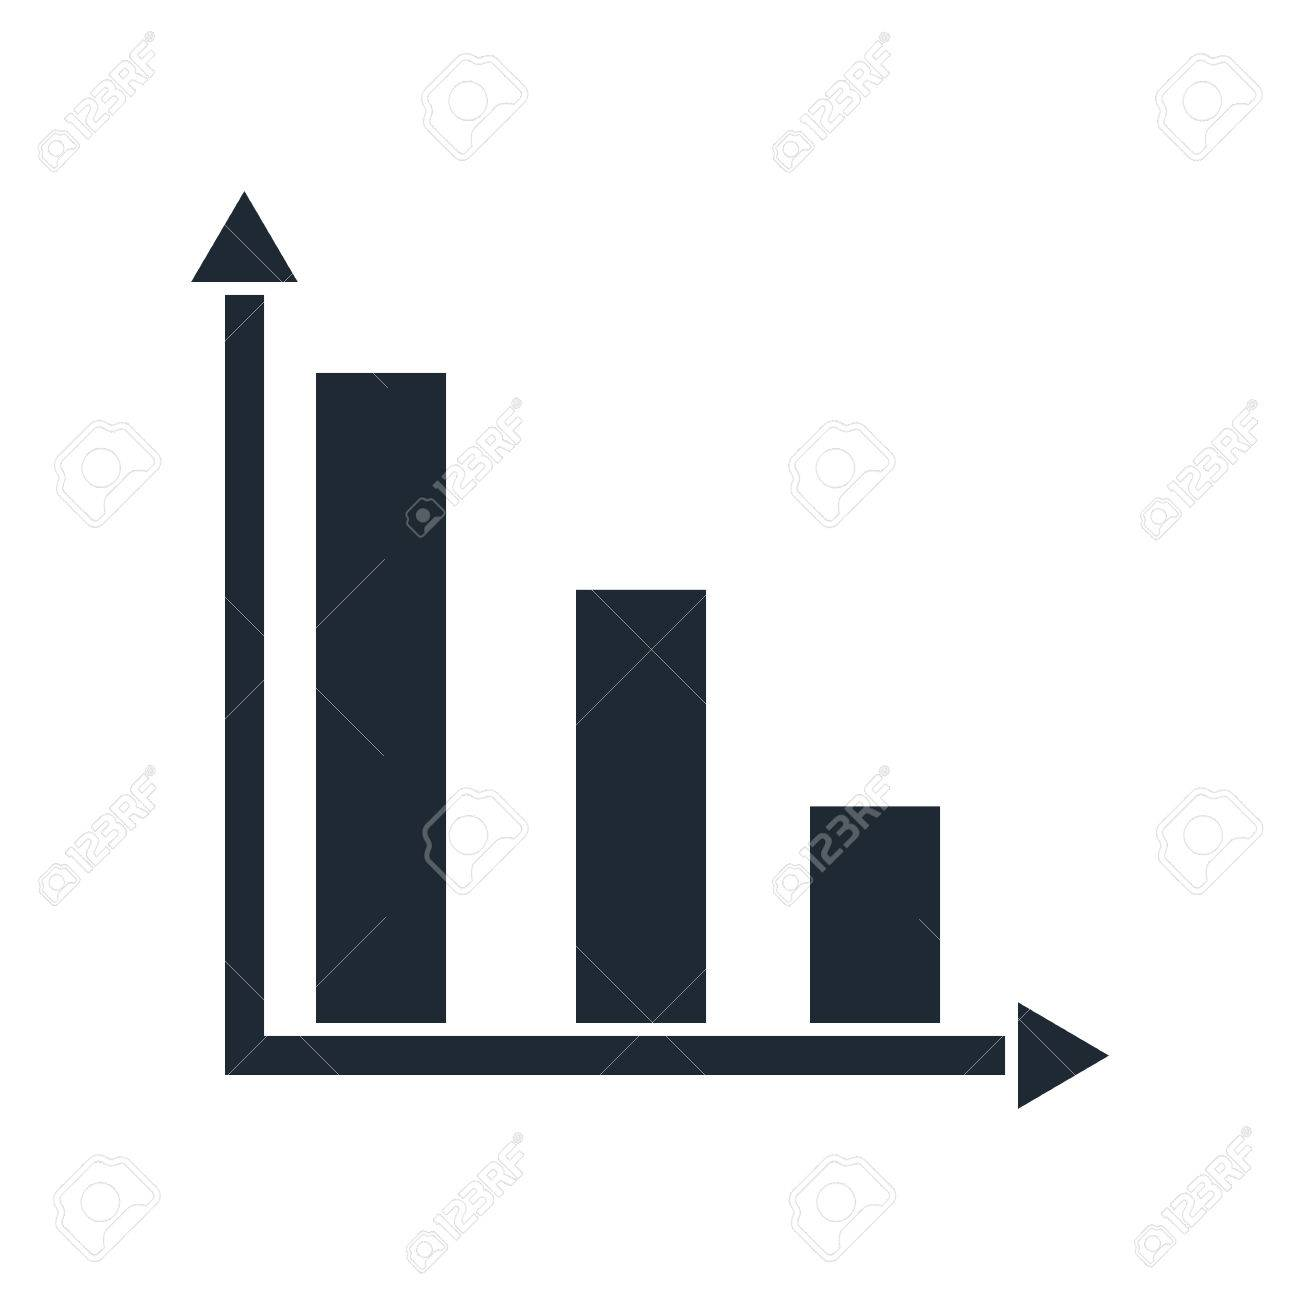 hight resolution of diagram icon stock vector 39573412